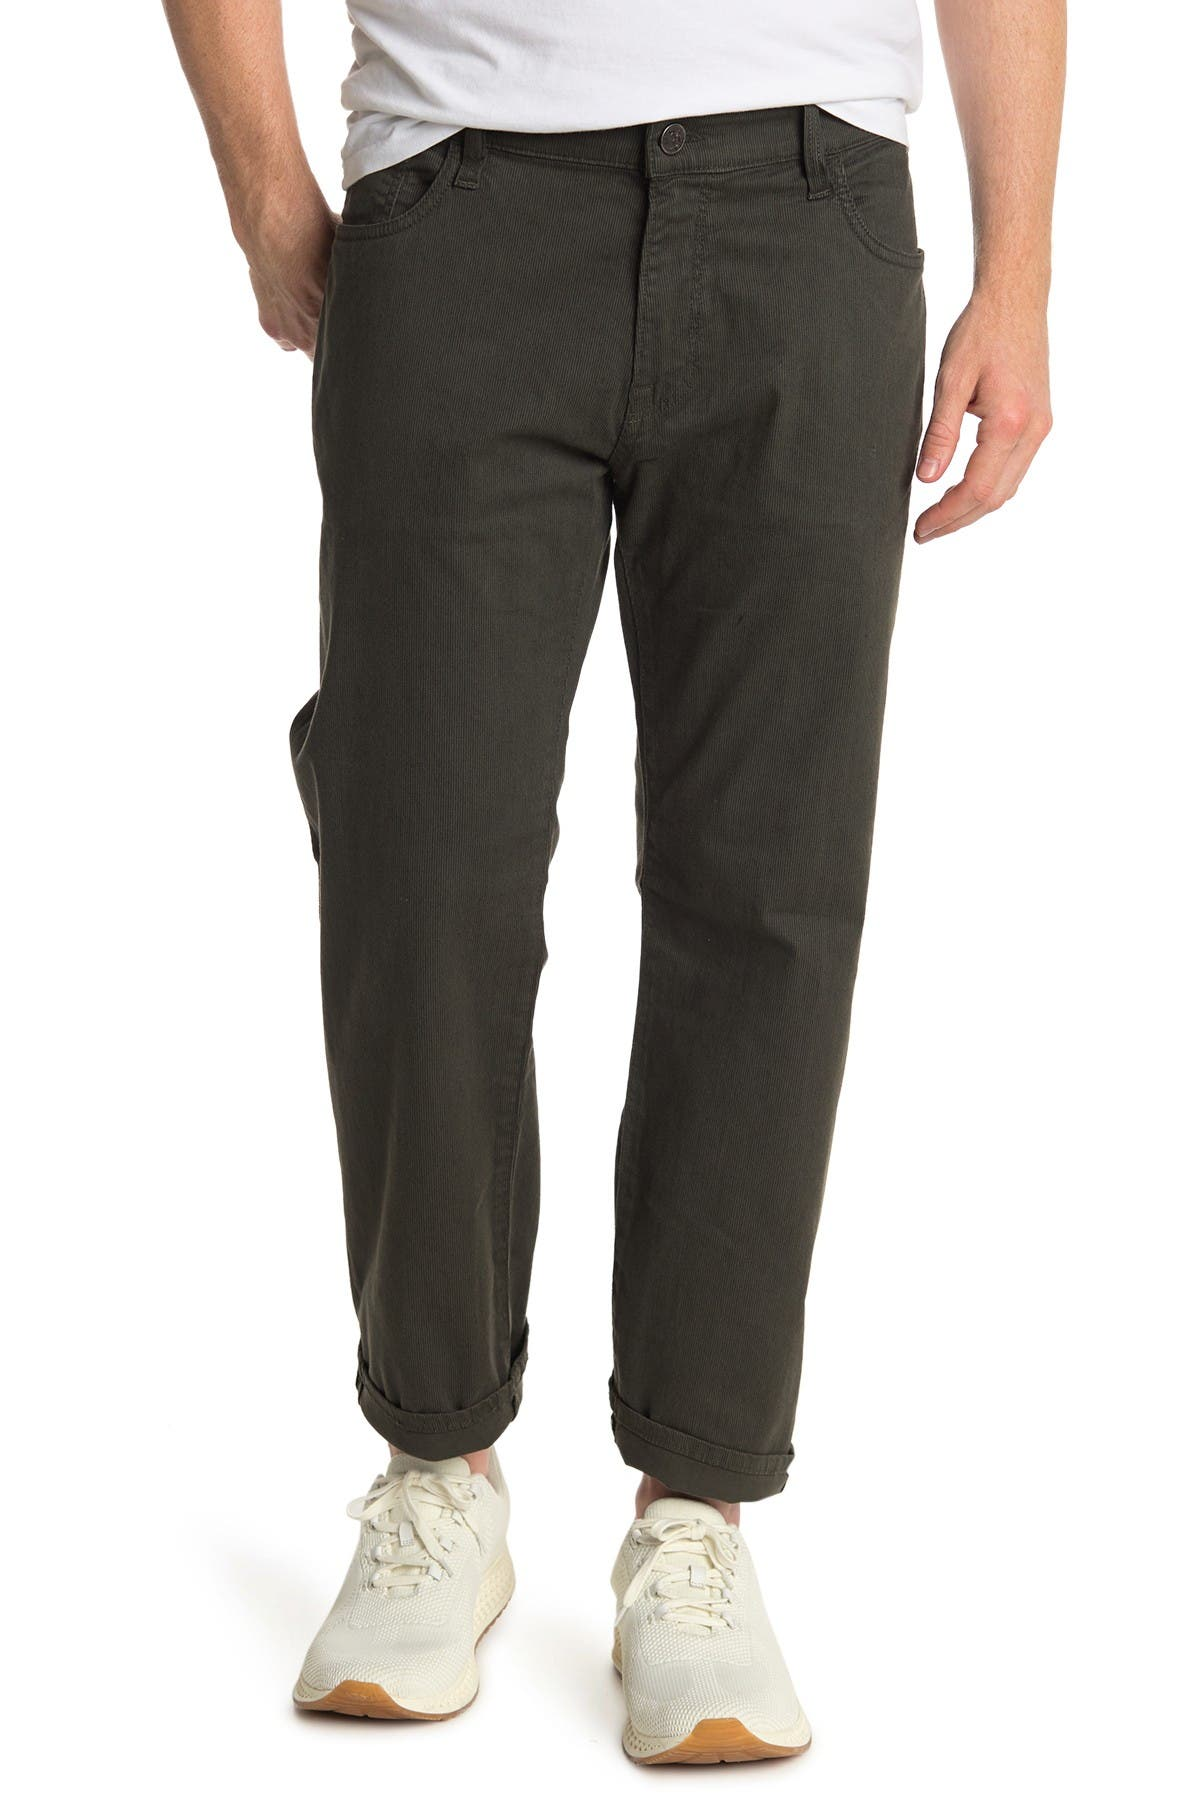 "Image of 34 Heritage Courage Straight Twill Pants - 30-34"" Inseam"